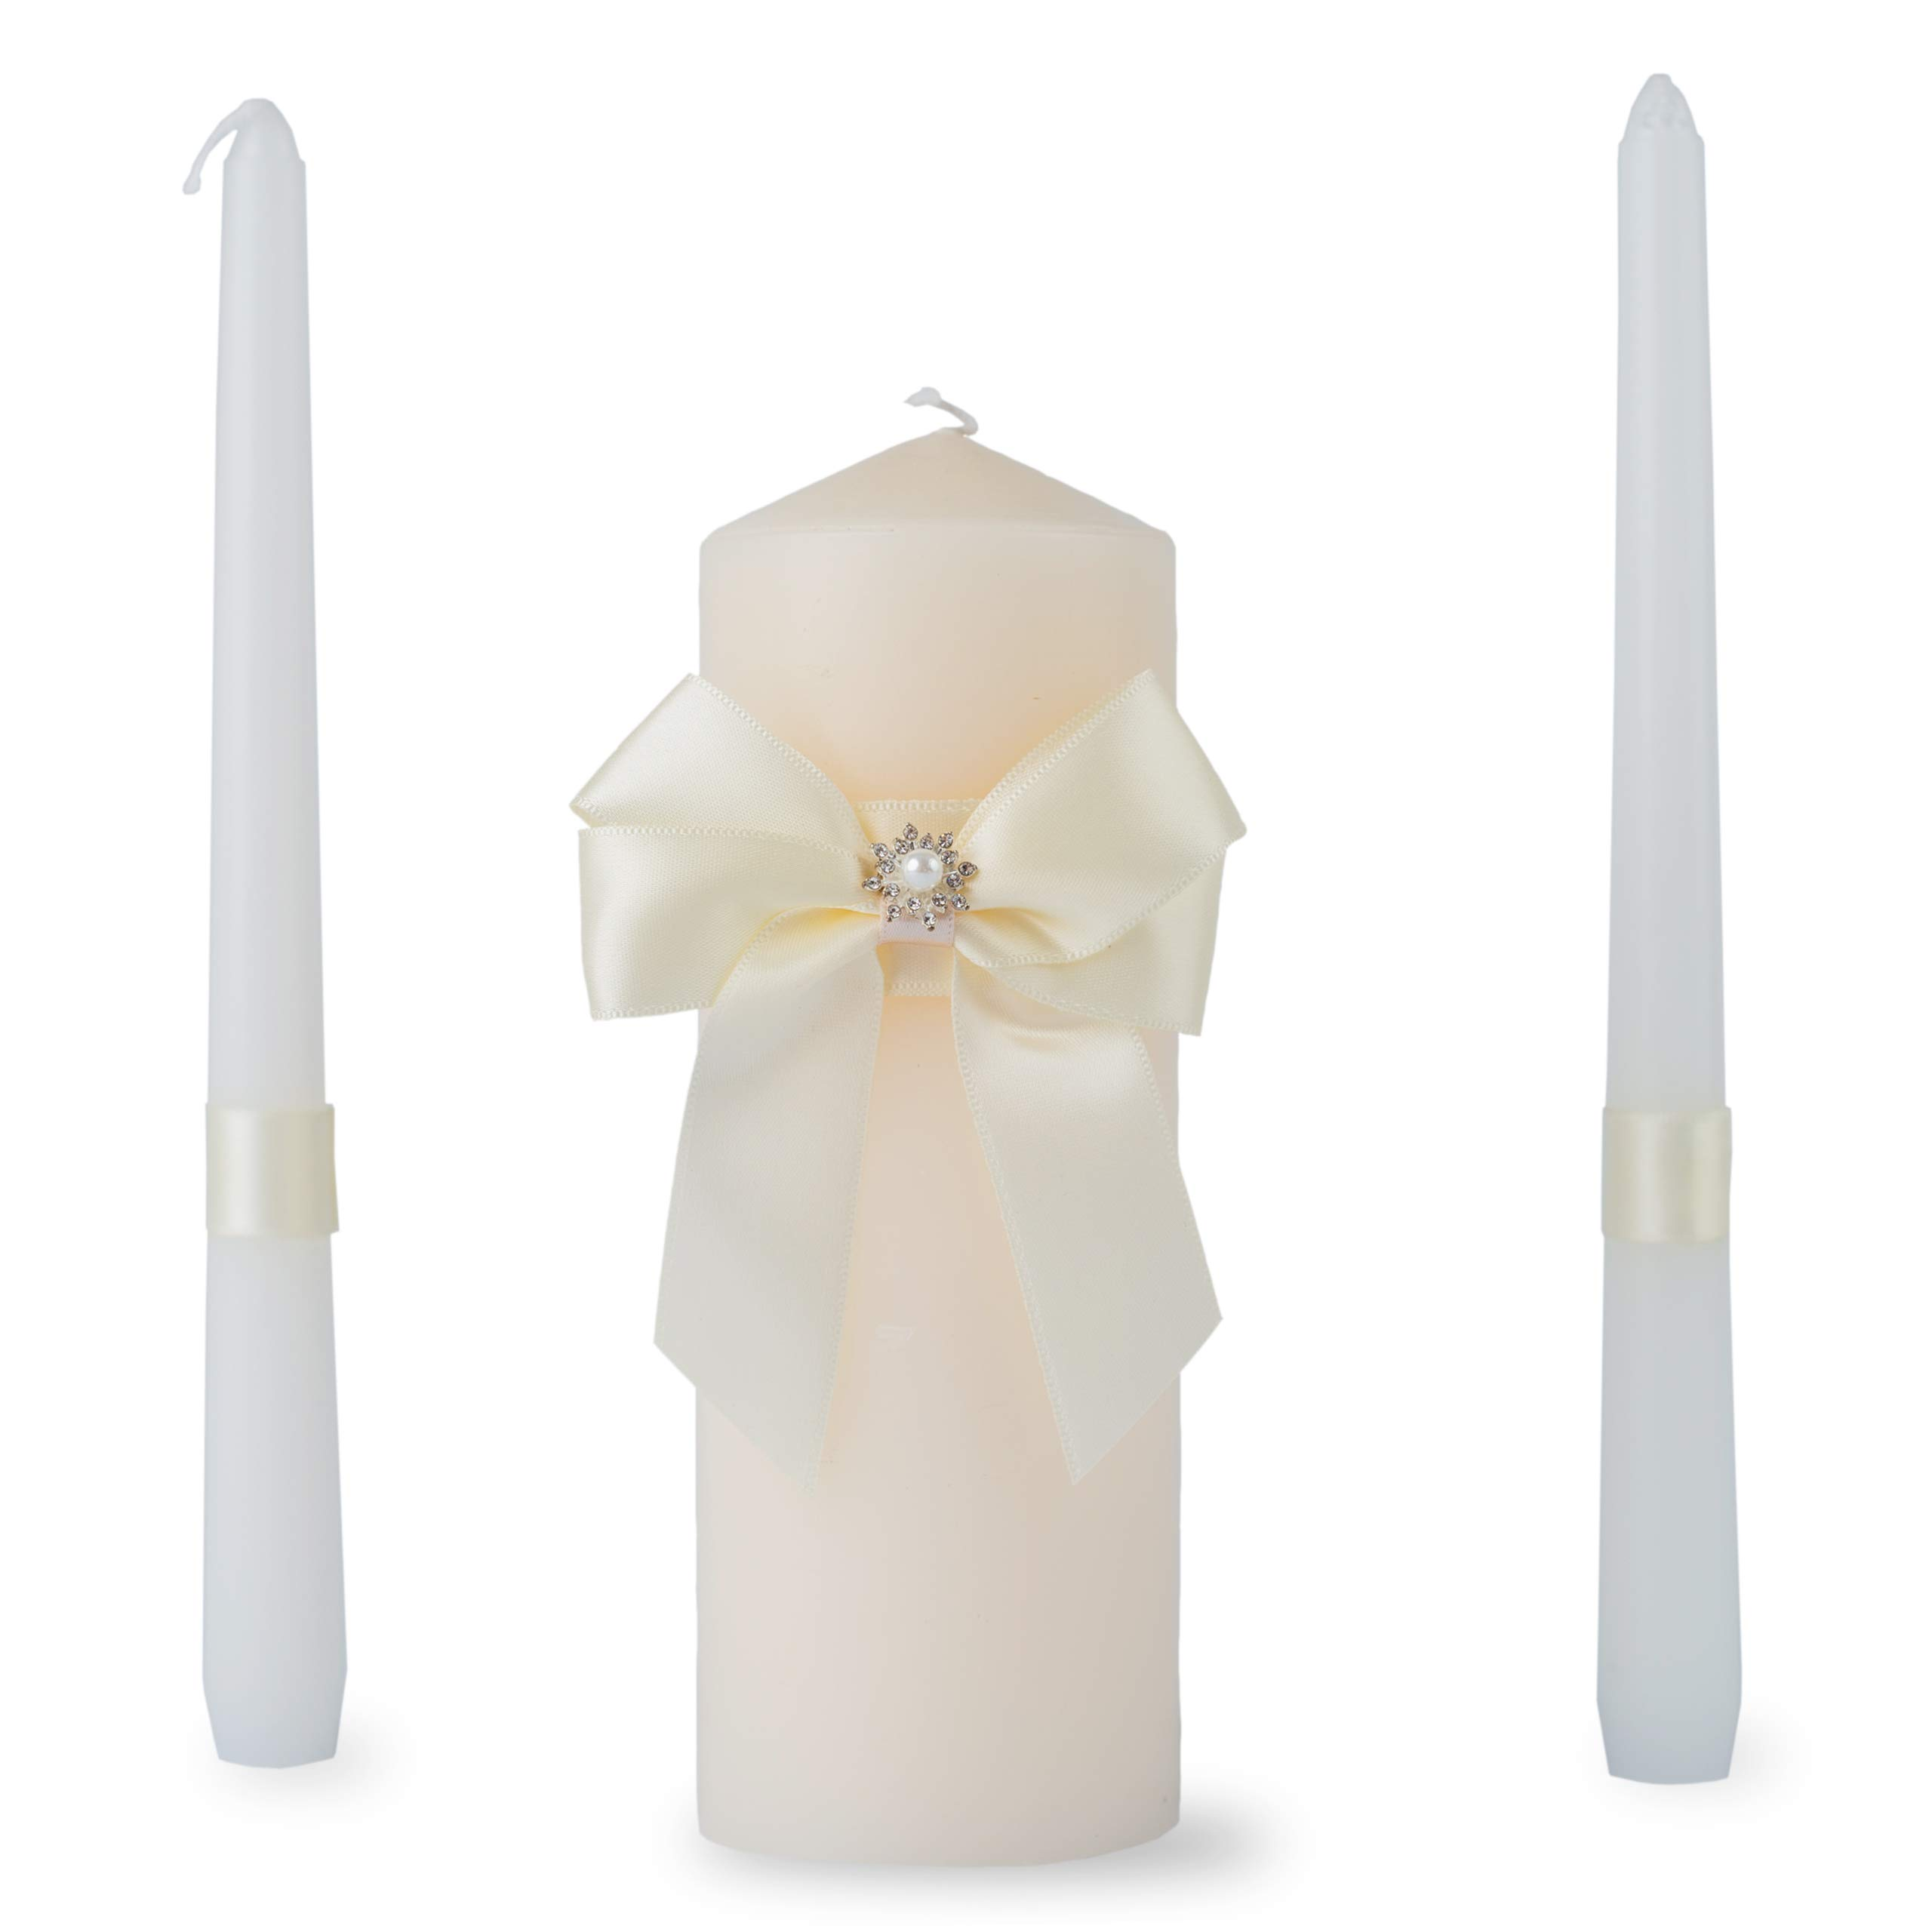 Customoffi Unity Candle Set with Box - Best for Reception, Weddings, Holidays, Romantic Dinners - Makes a Great Gift and Fits Any Ceremony